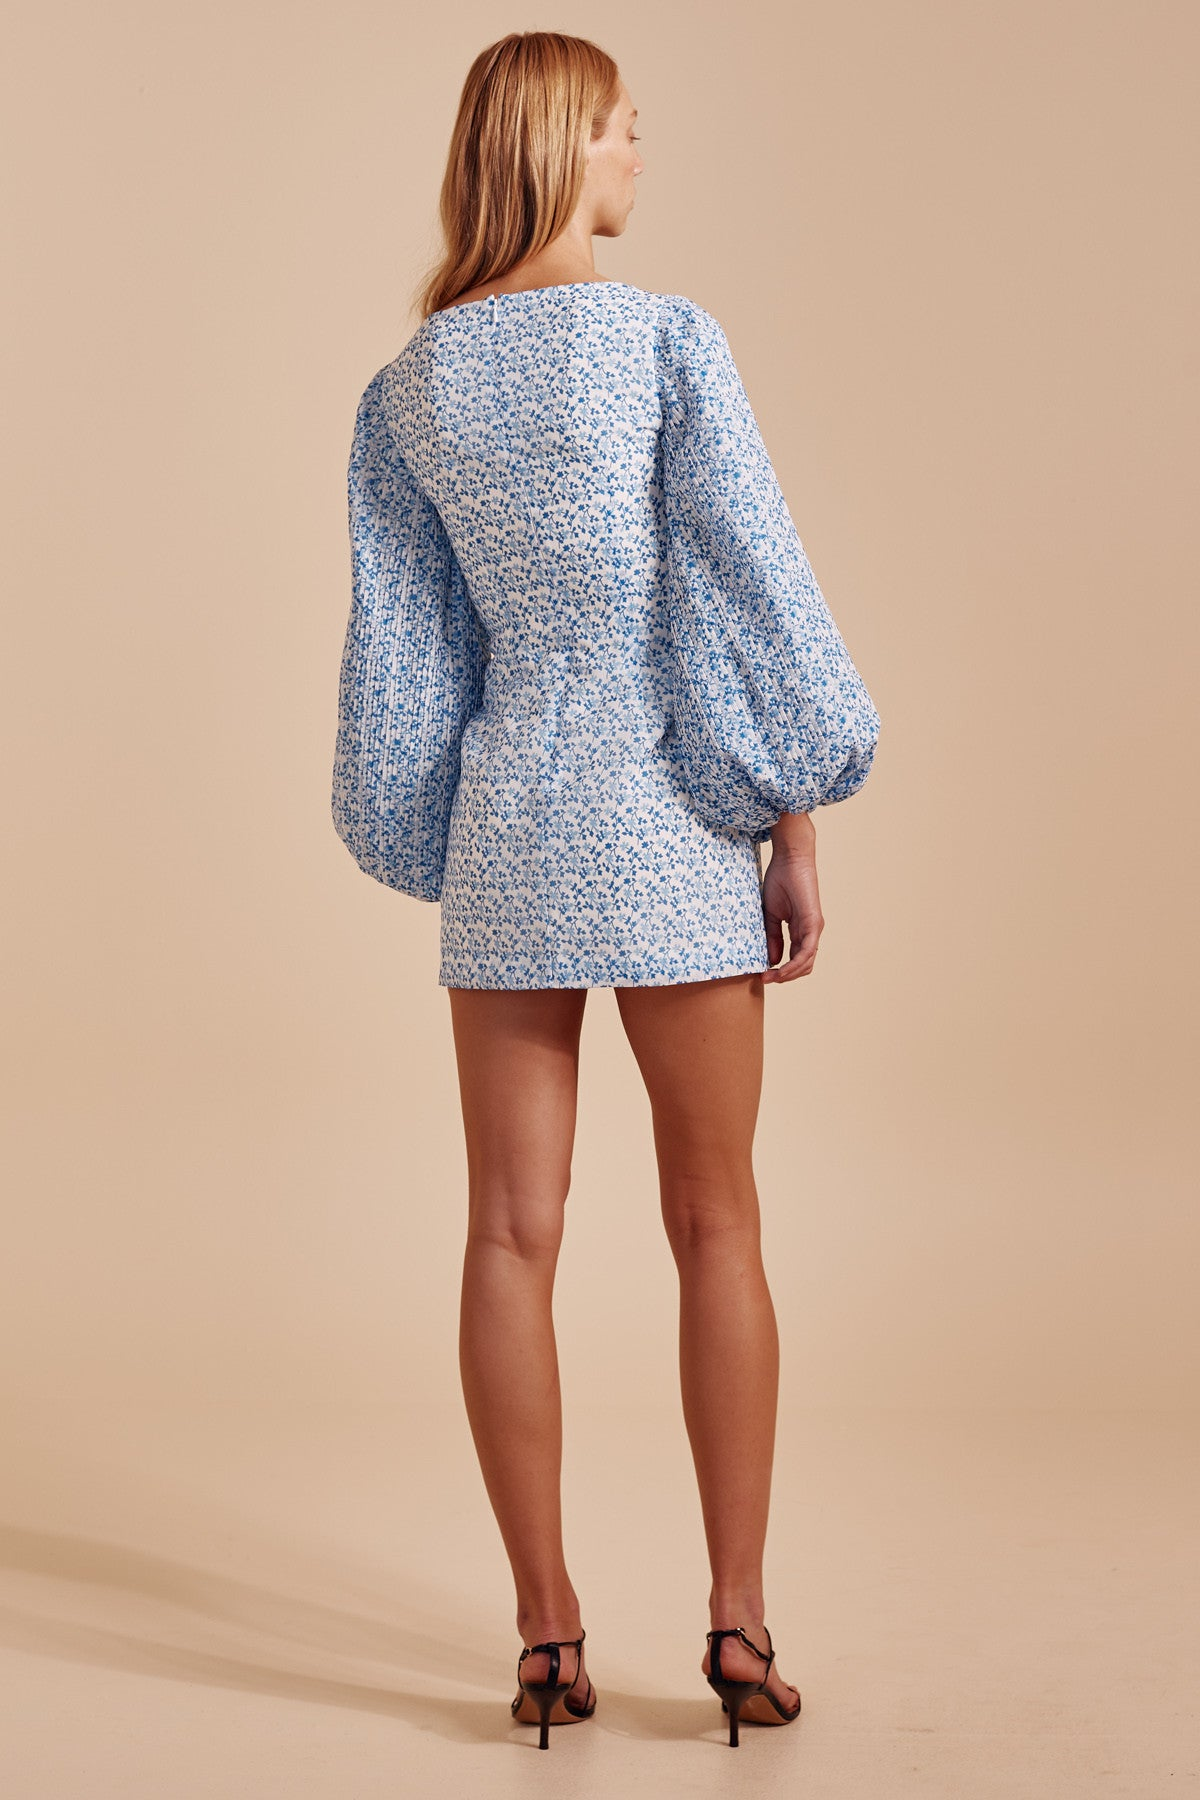 COME ACROSS LONG SLEEVE DRESS light blue floral